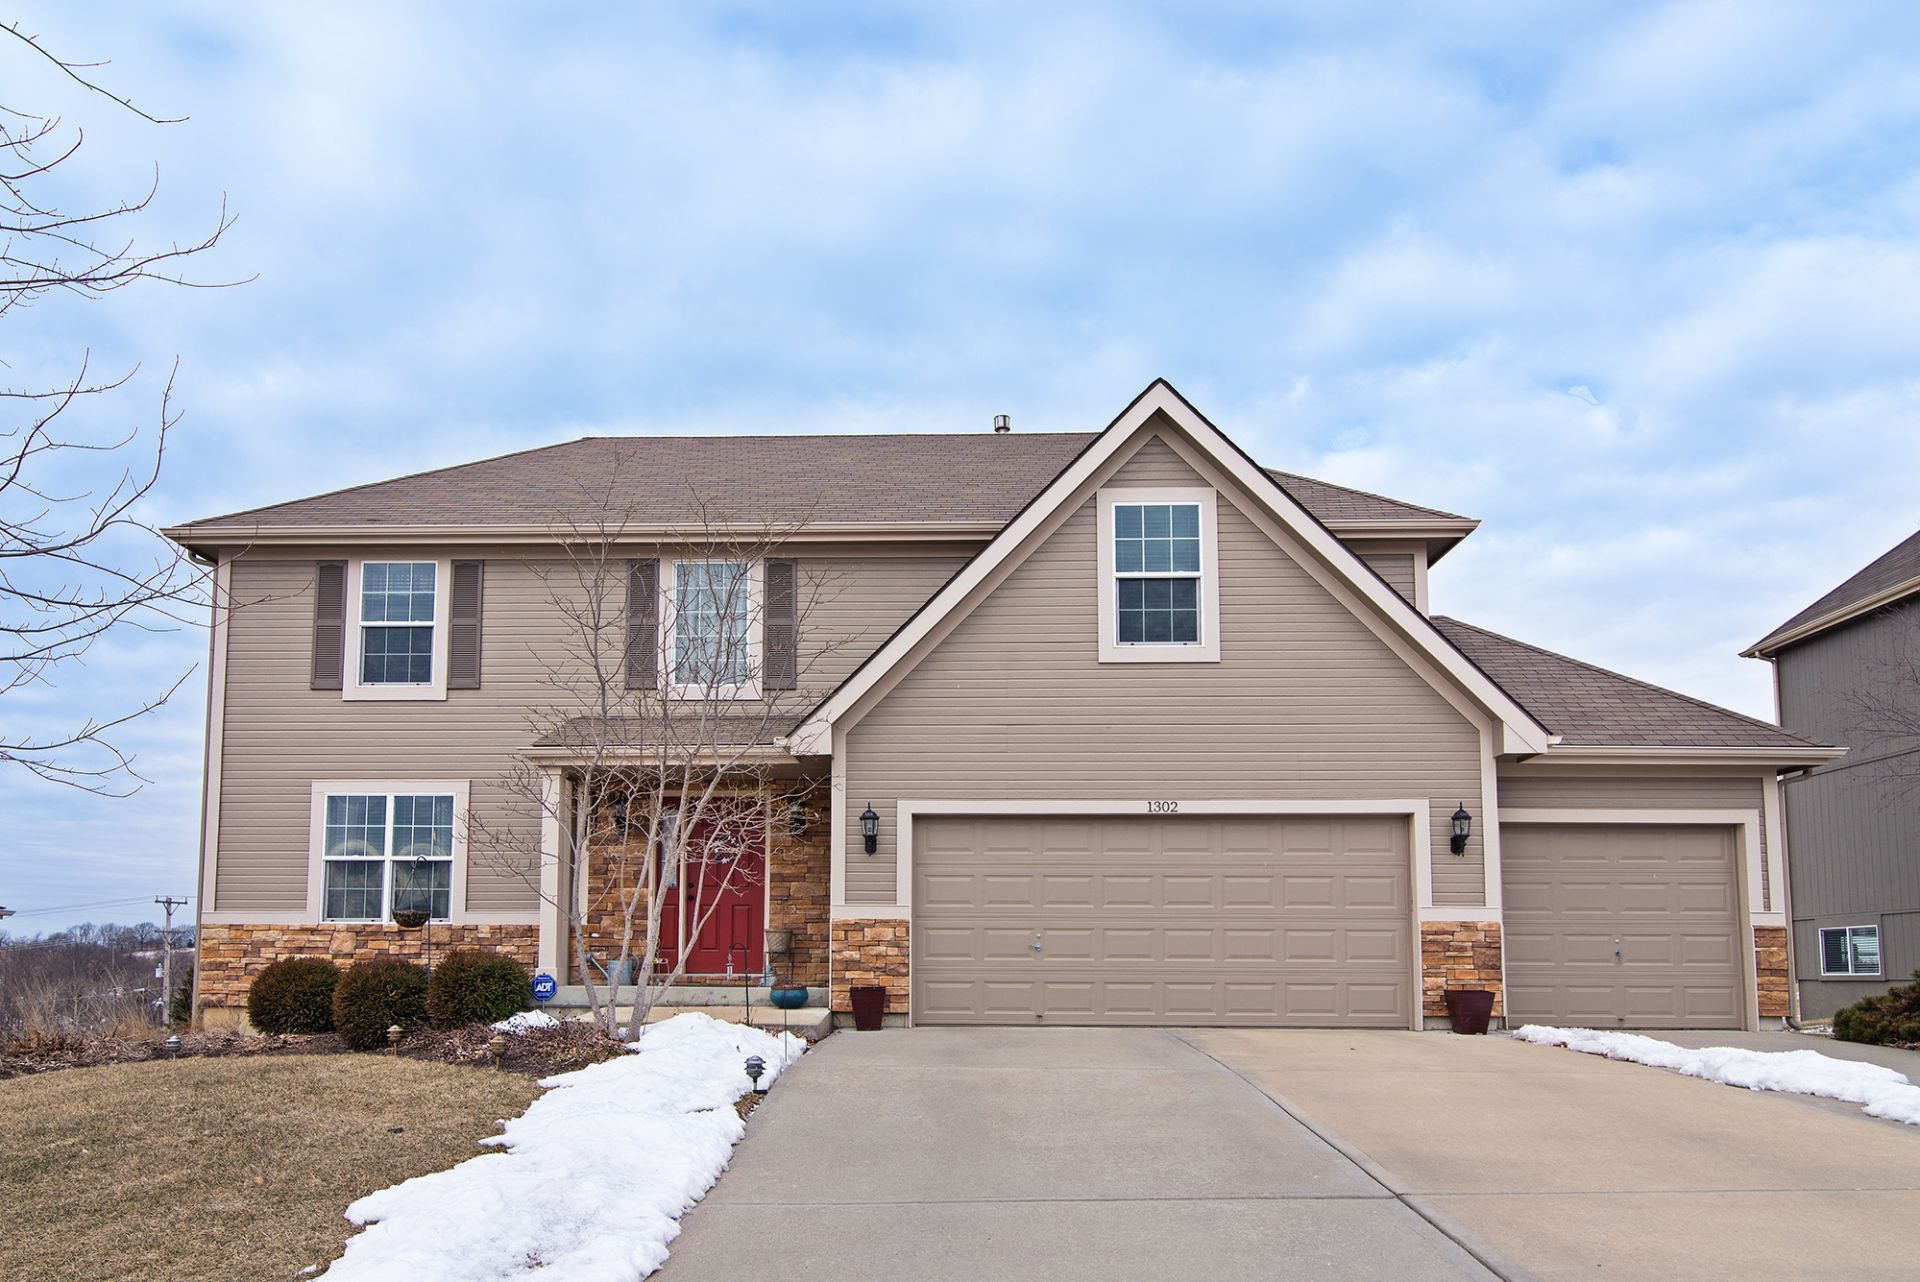 JUST LISTED! So Many Upgrades in this One-Owner Rock Creek Ridge Home